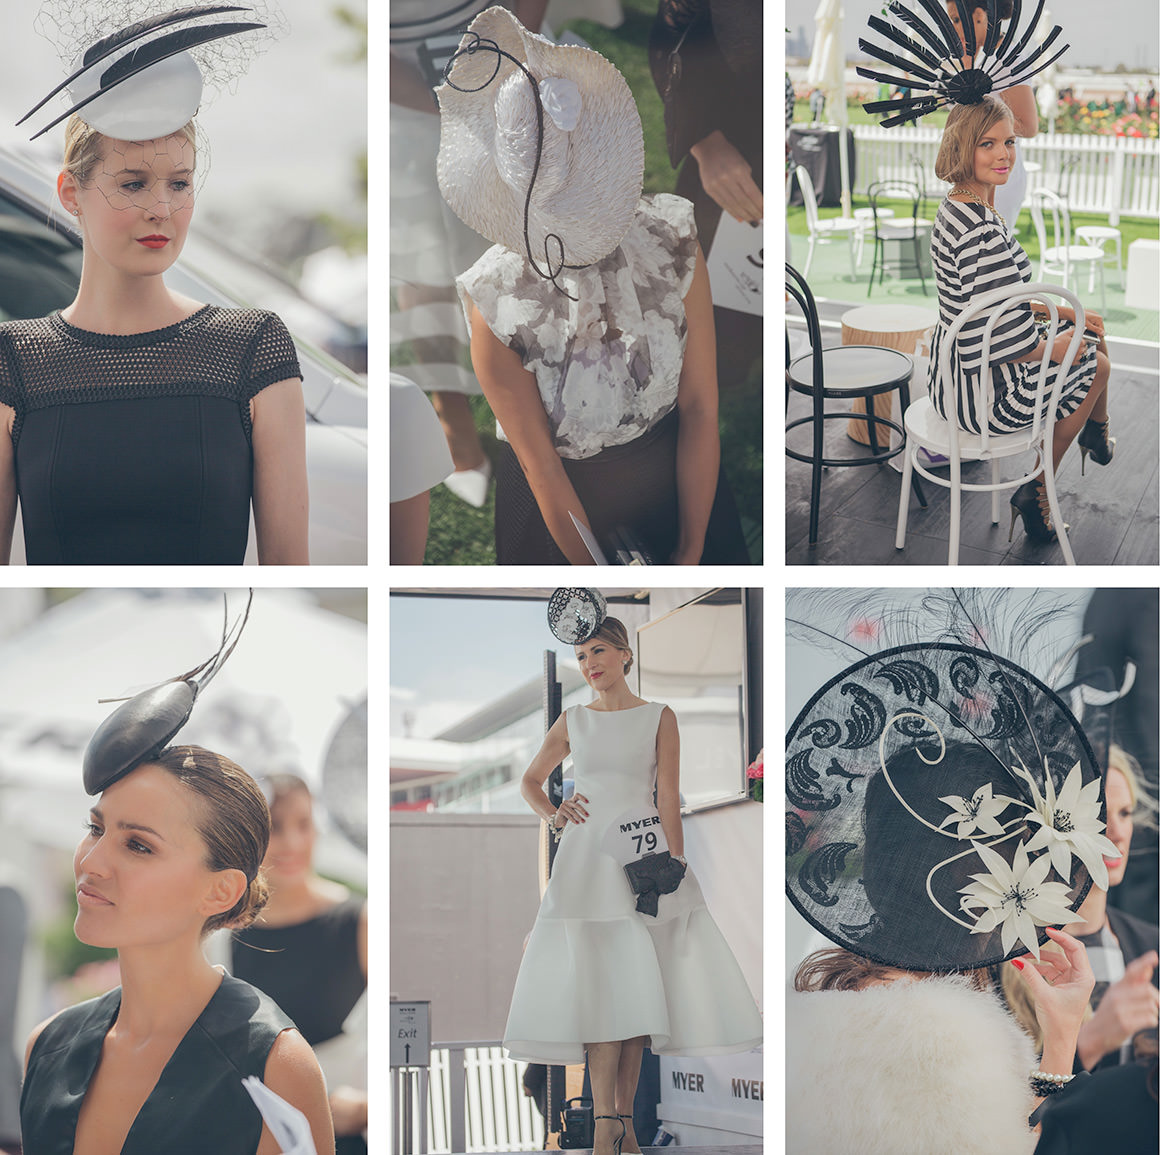 best millinery of the fashions on the field at the spring racing carnival in melbourne - derby day